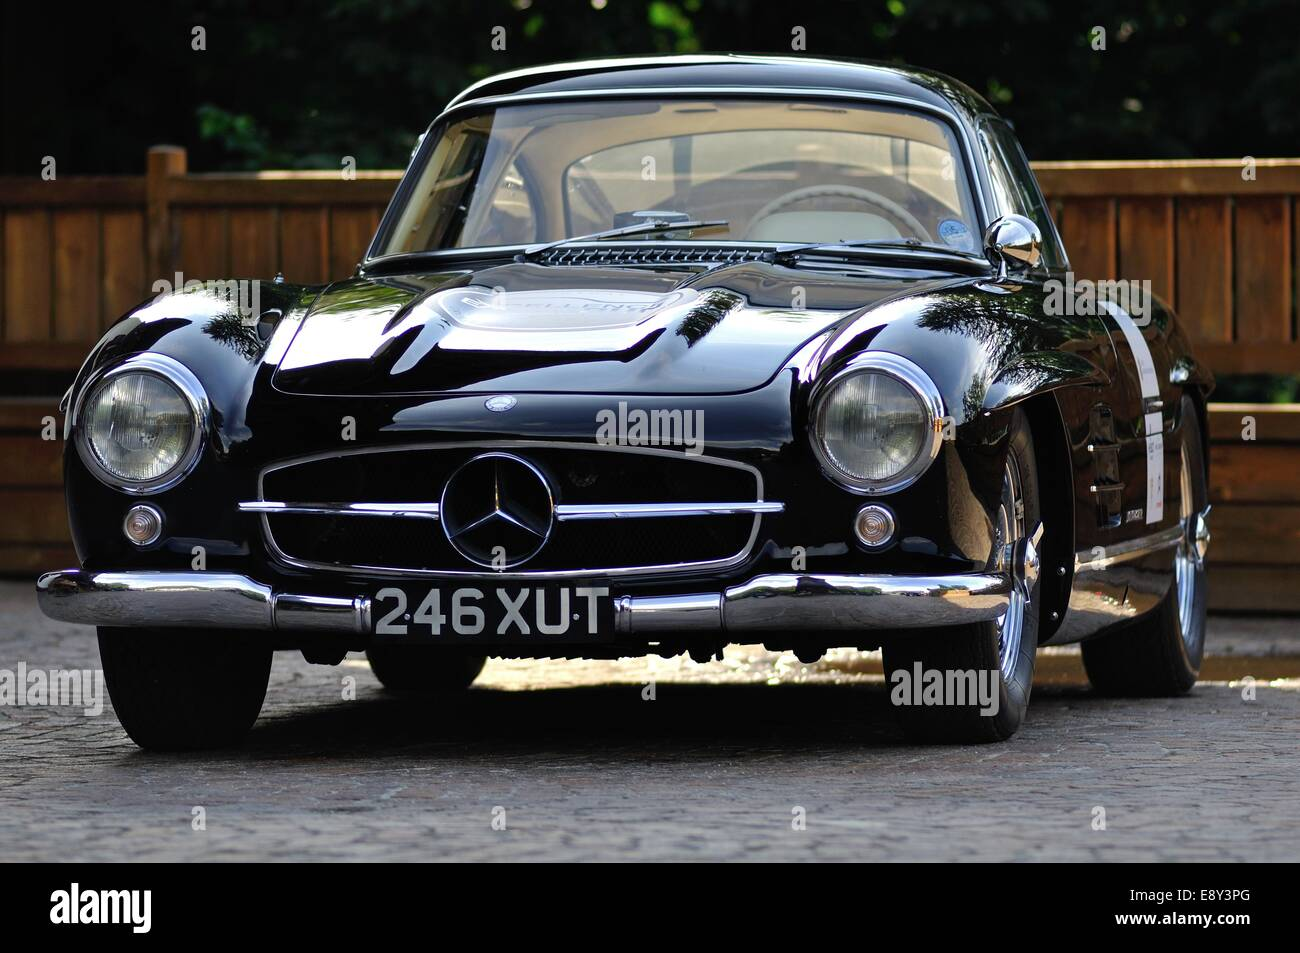 Mercedes benz 300 sl gullwing in the evening light parked by a wooden fence stock